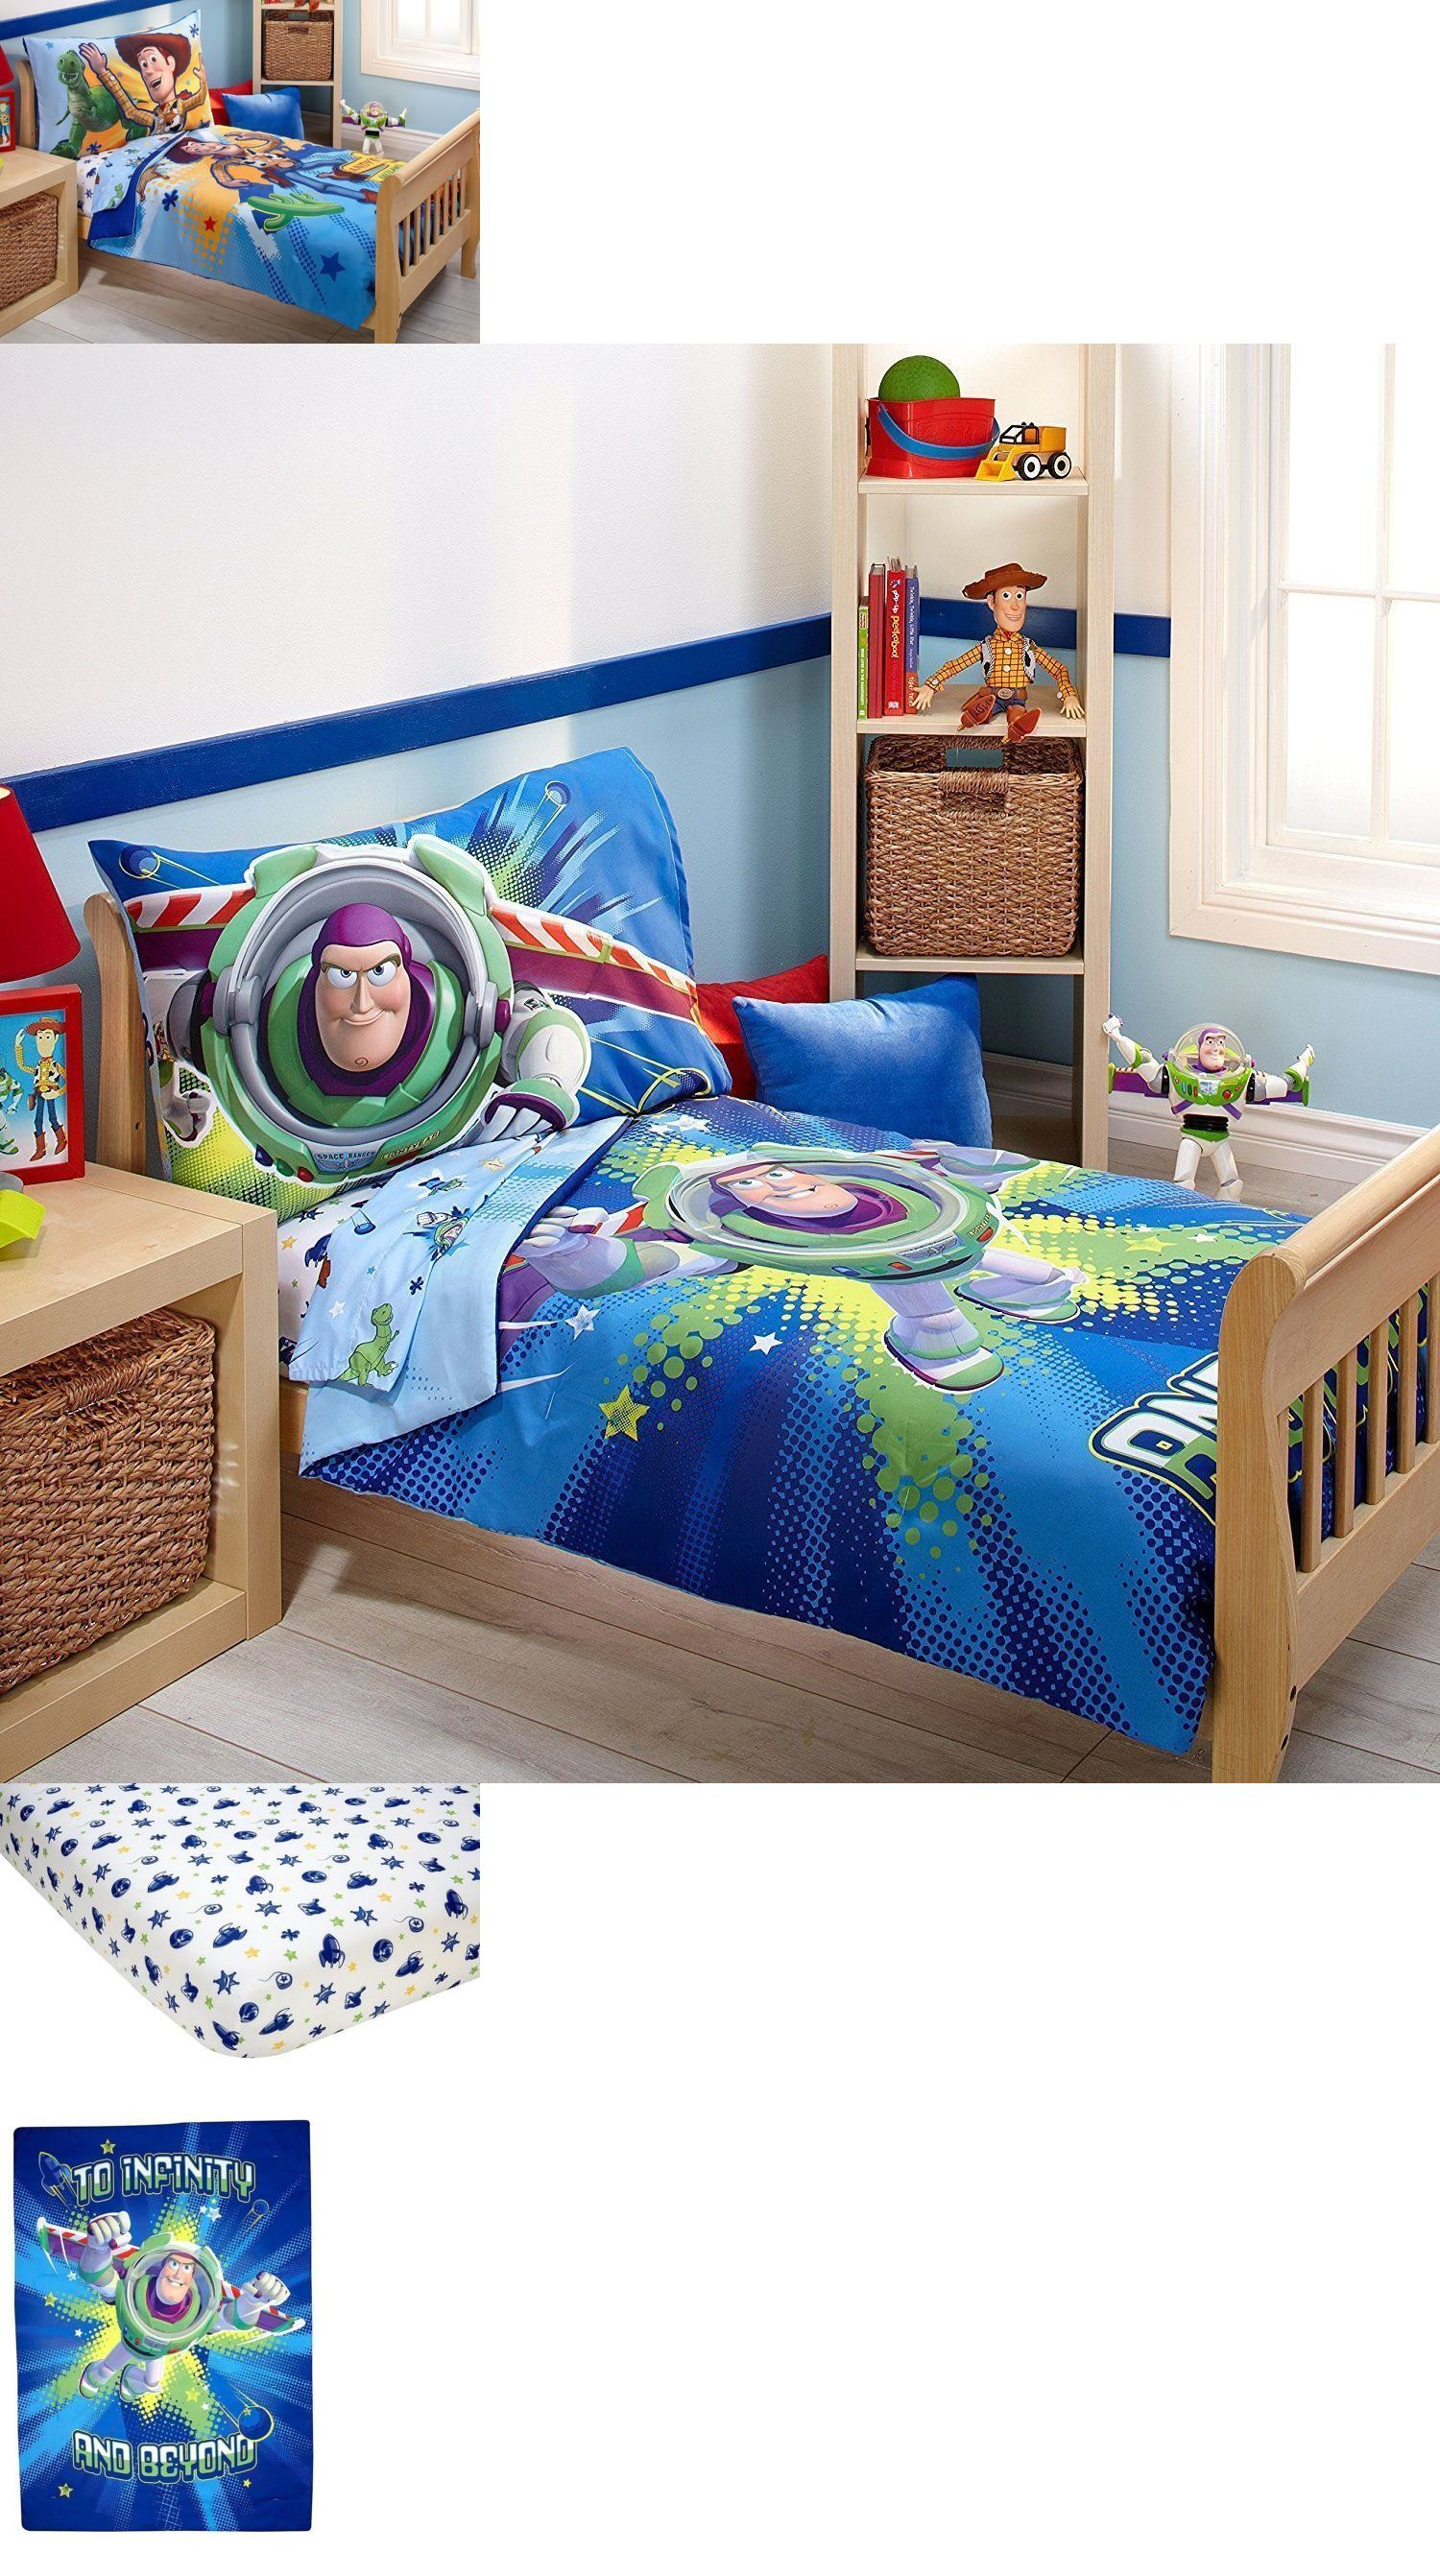 Toy story toddler bedding - Kids At Home Disney Pixar Toy Story Power Up 4 Piece Toddler Reversible